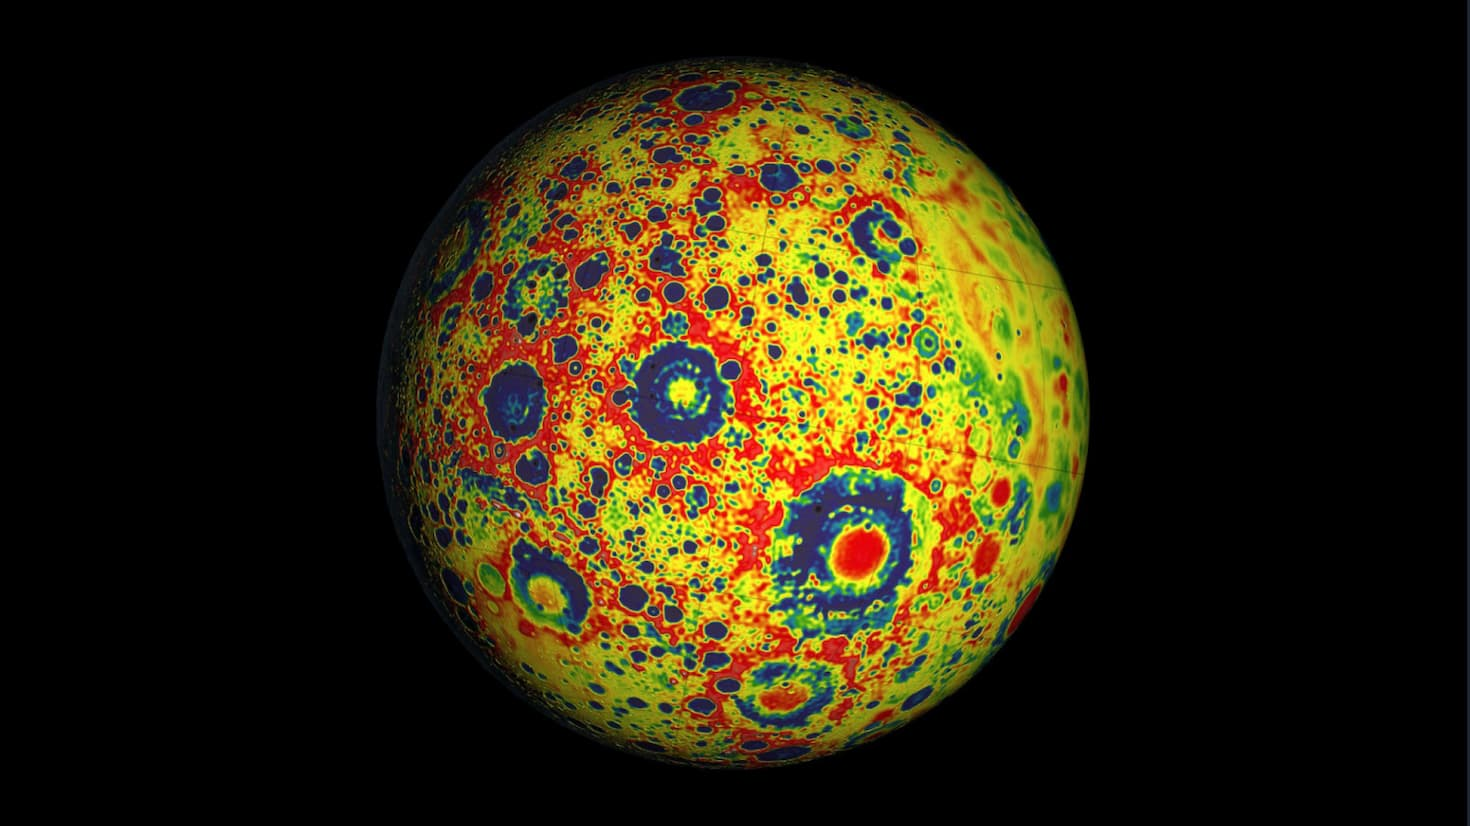 Imaging scan of the surface of the moon